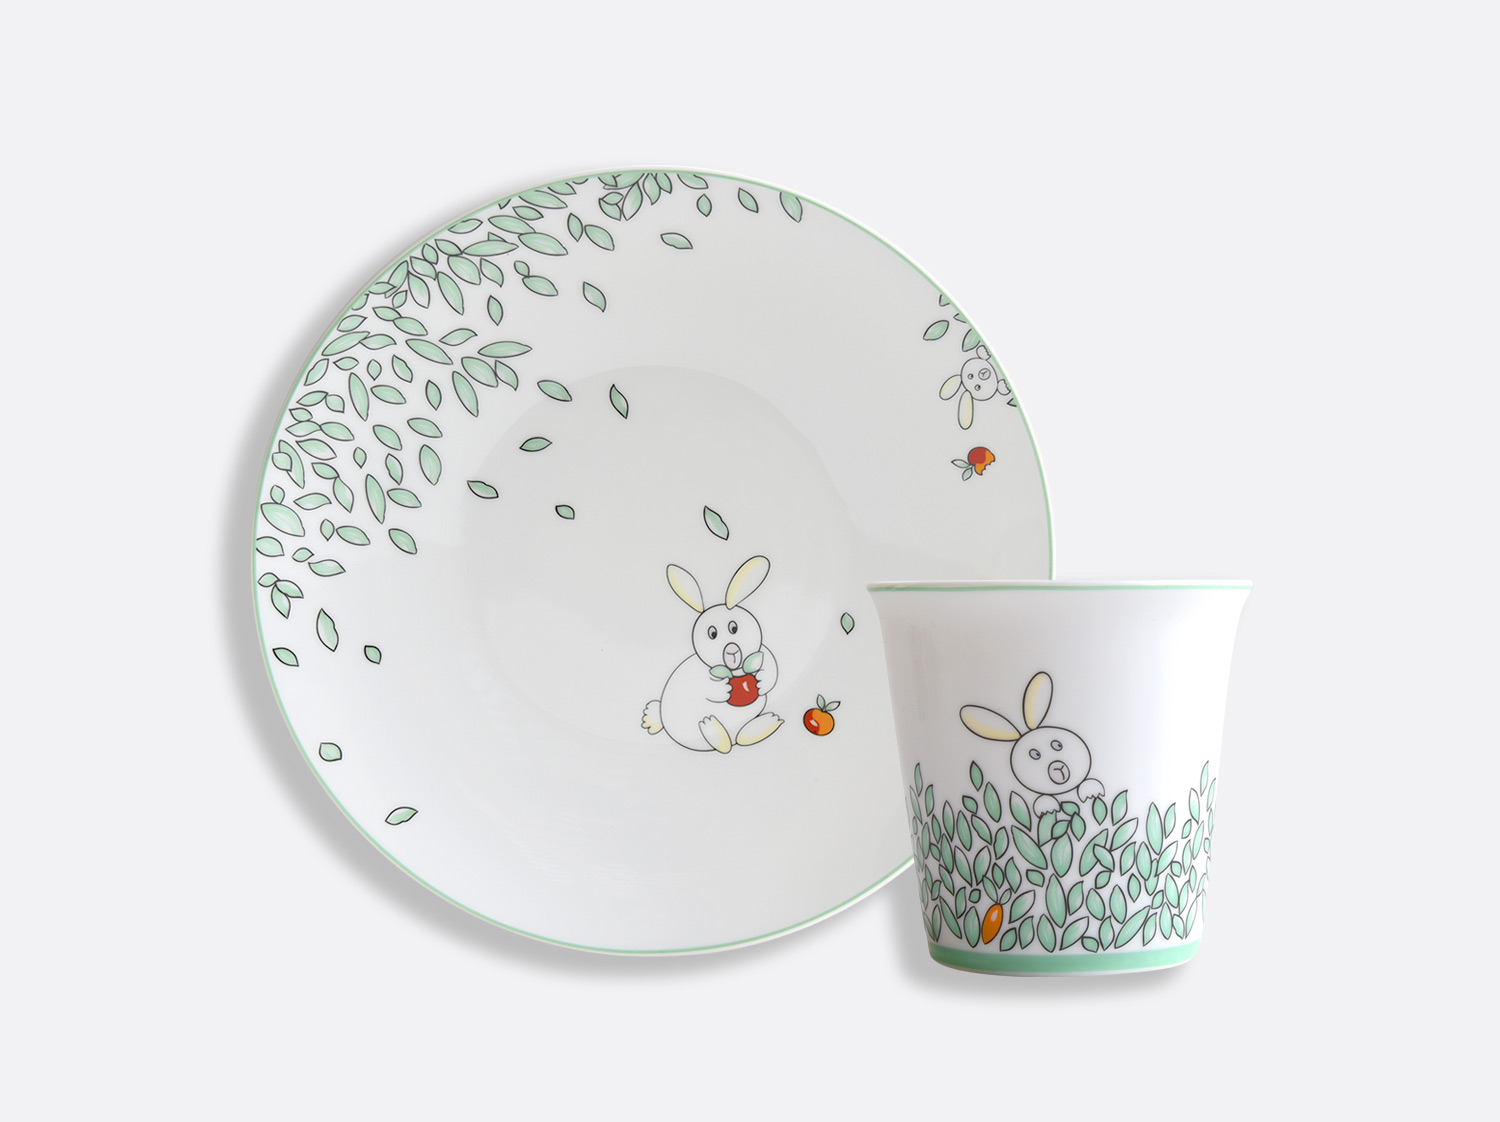 Coffret 1 assiette 21 cm + timbale en porcelaine de la collection PETIT BOULINGRIN Bernardaud